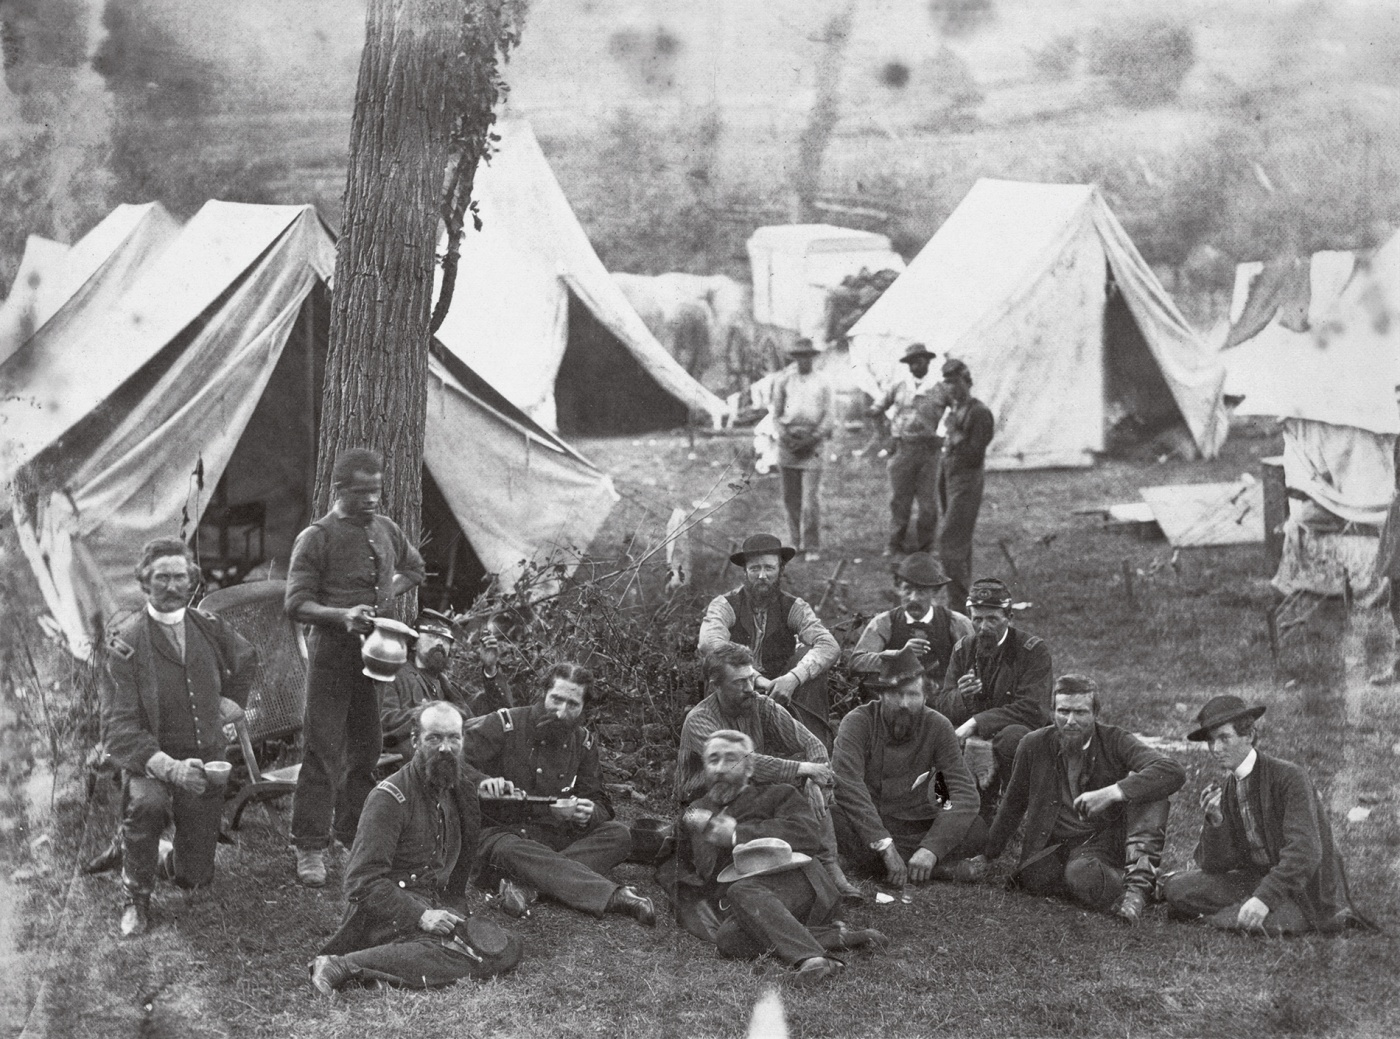 Civil War soldiers and commanders